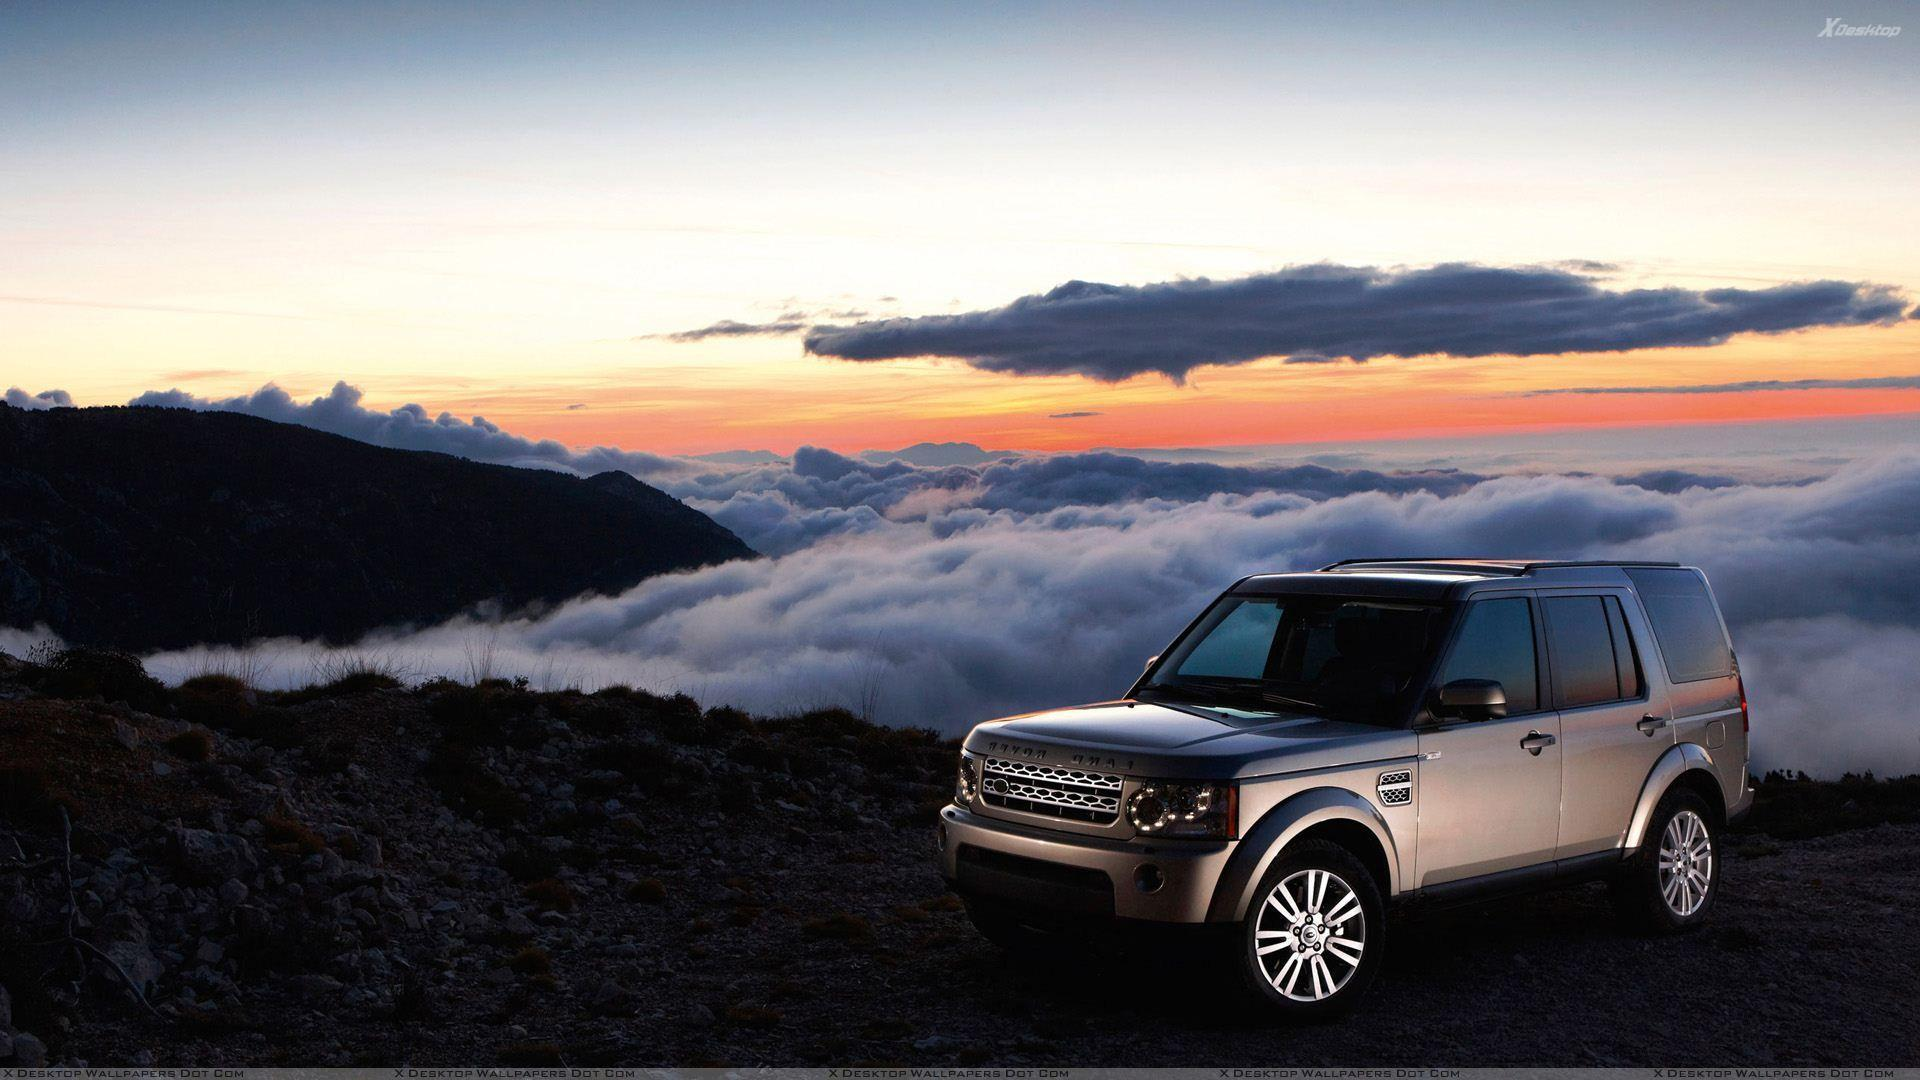 39 Best HD Walls of Land Rover Discovery, 4K Ultra HD Land Rover ...